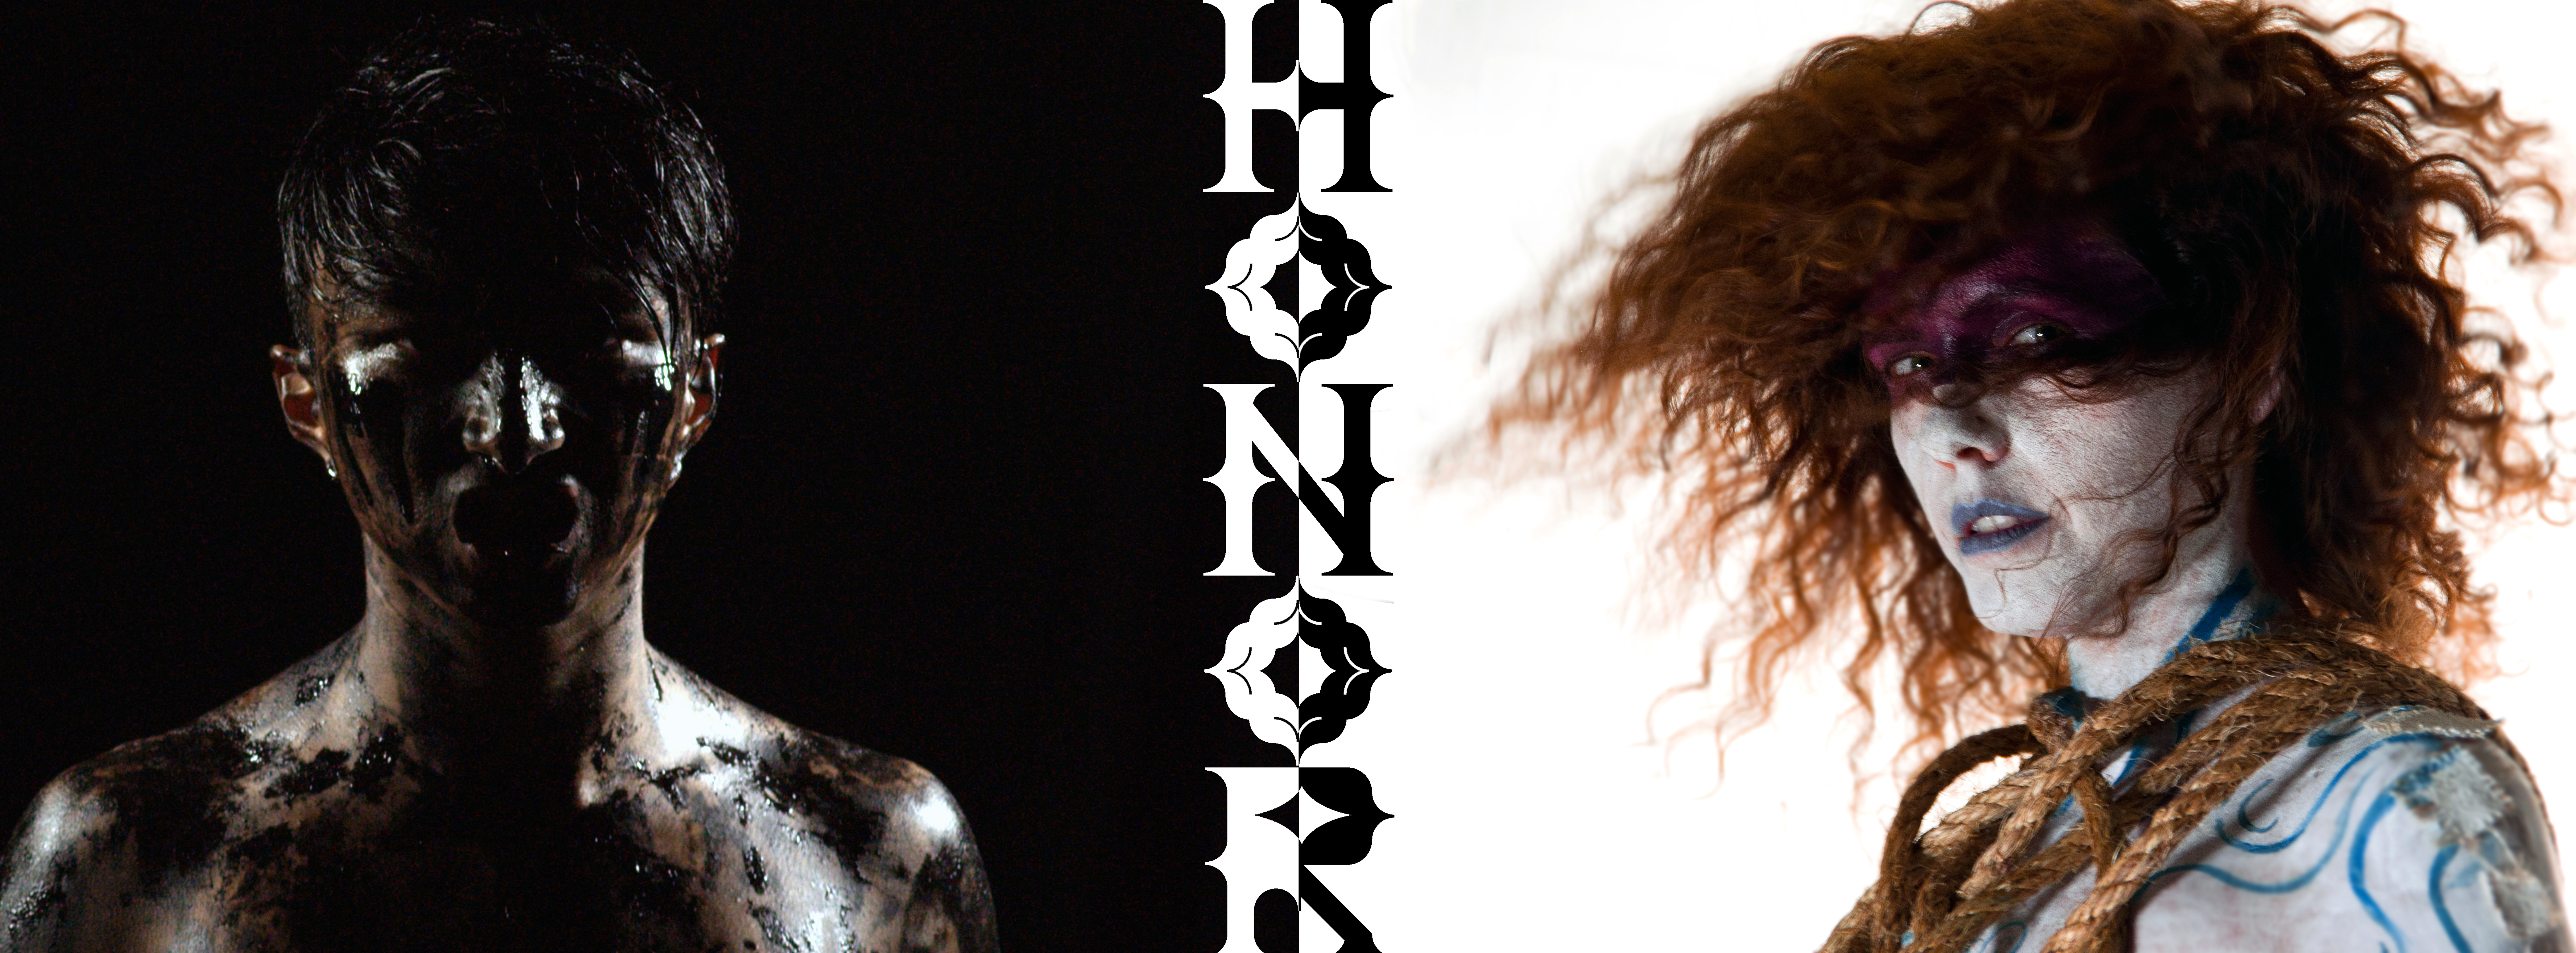 HONOR BANNER